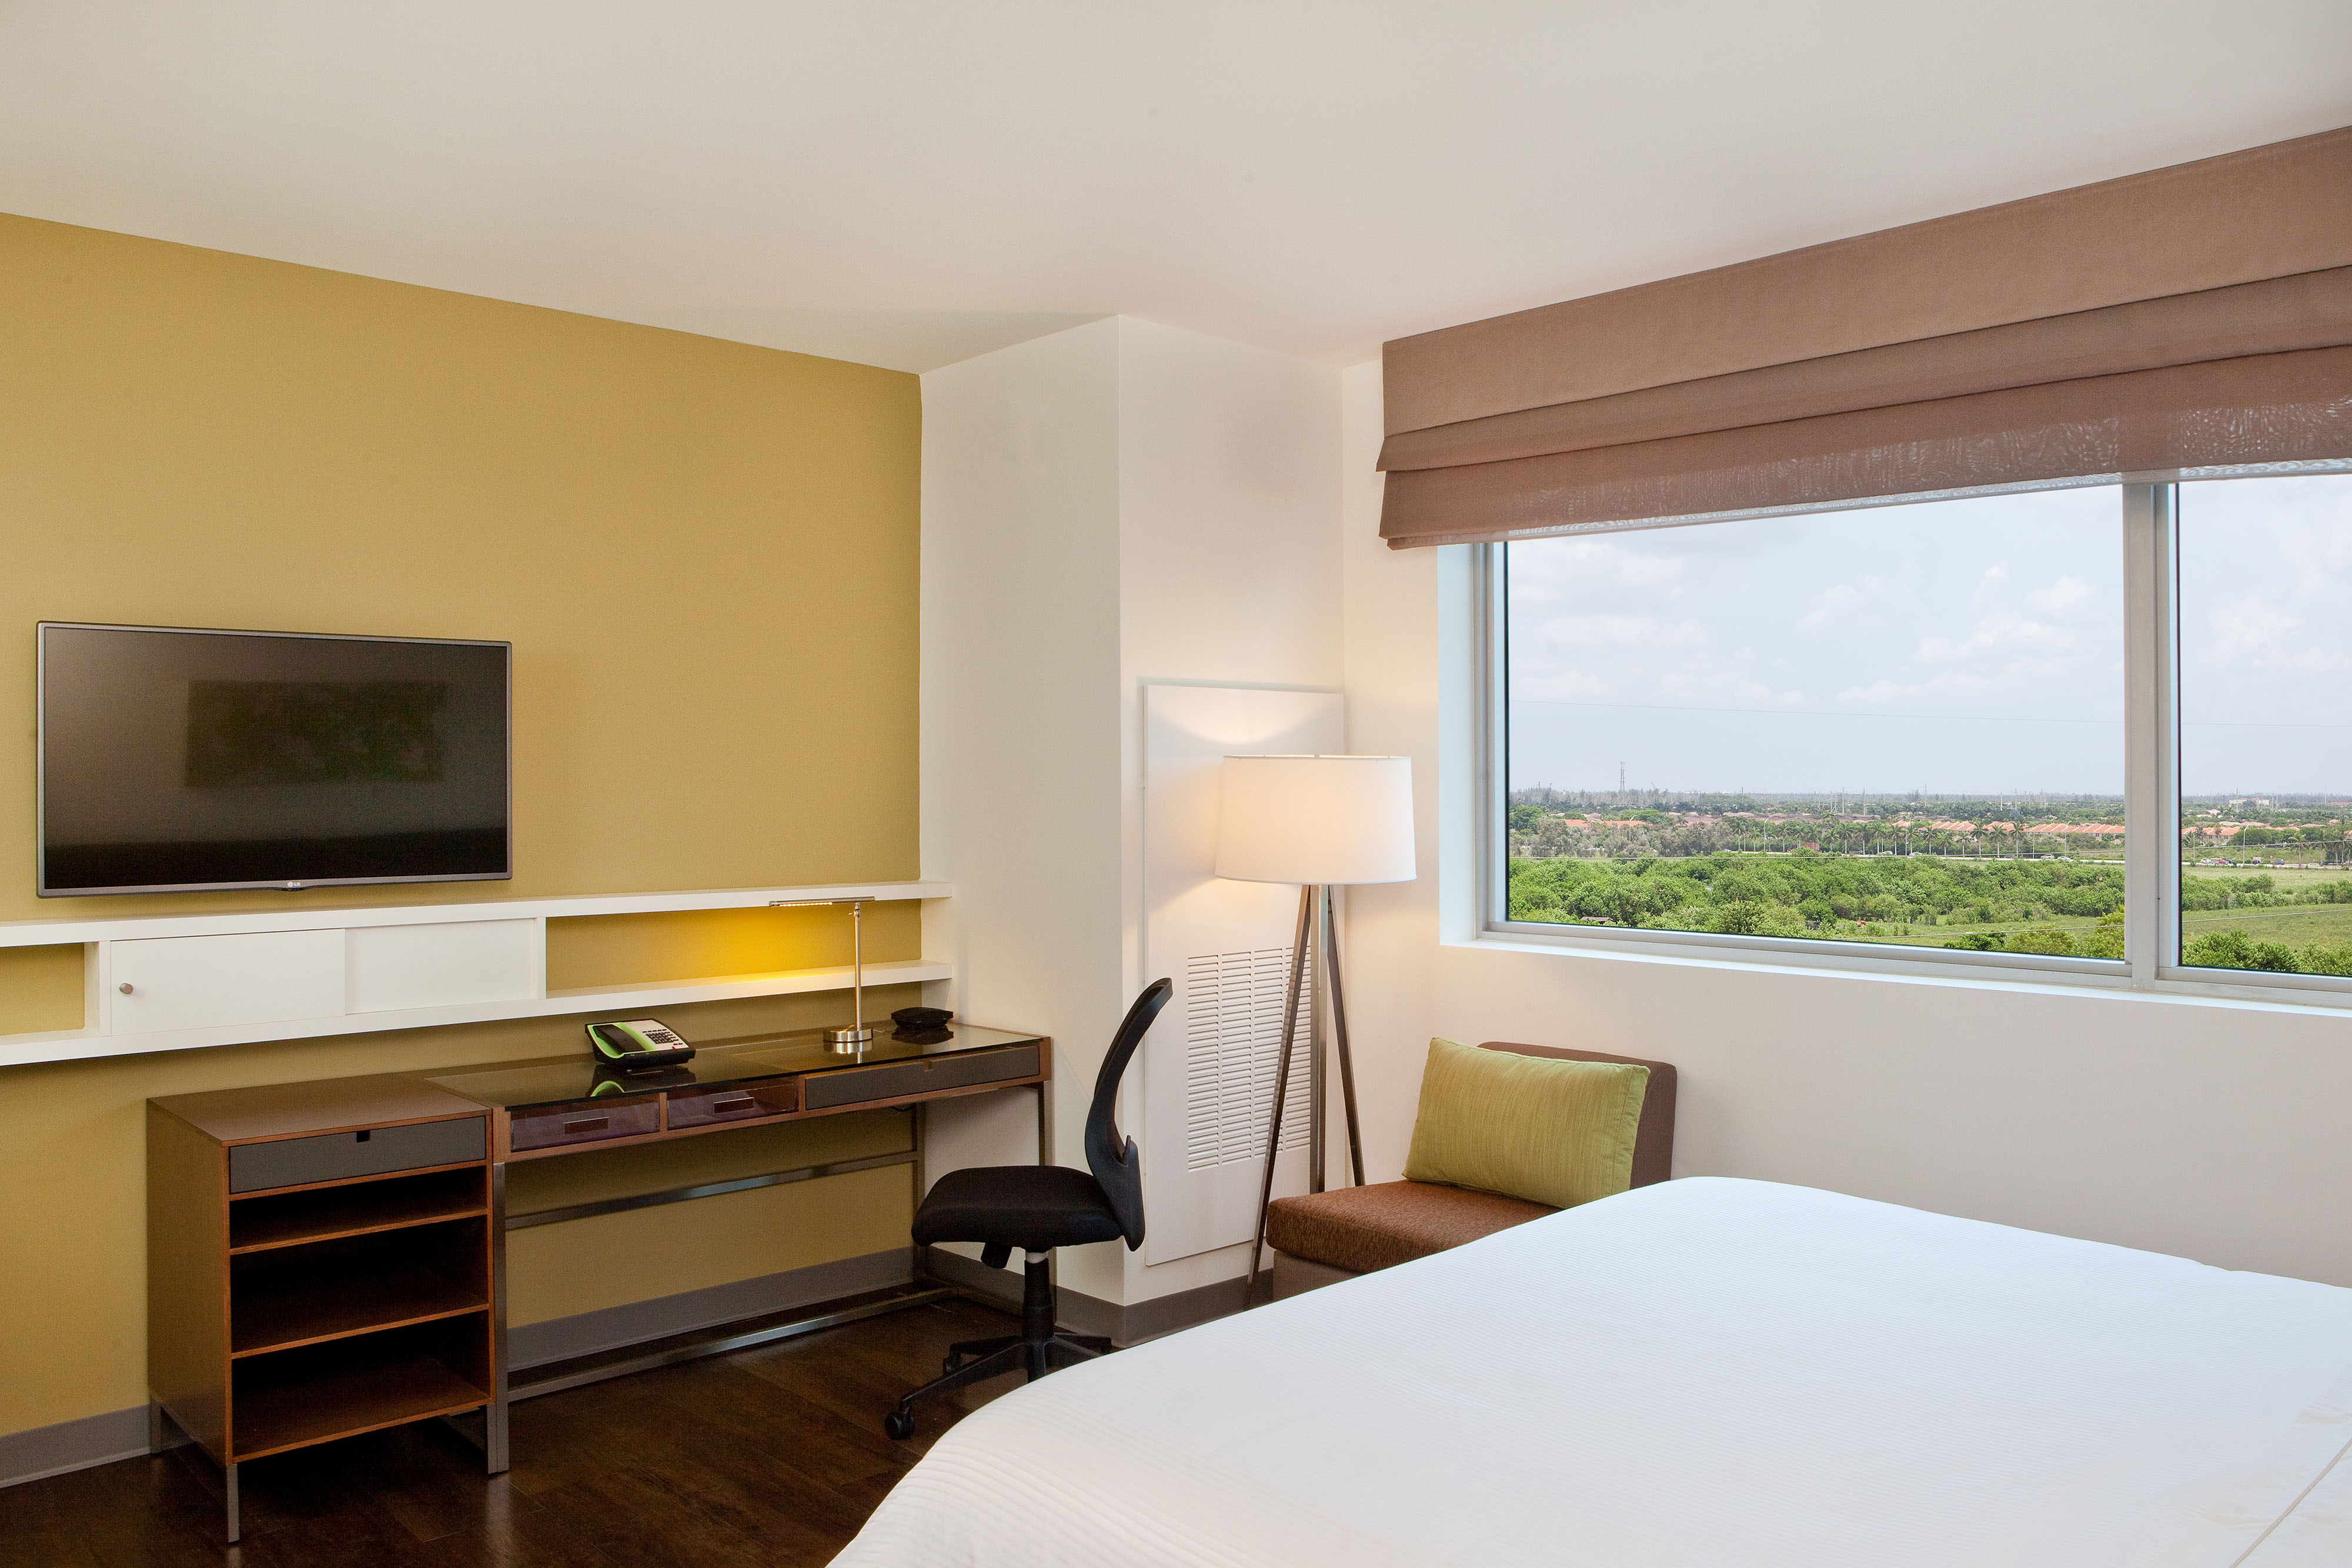 Element Miami Doral Hotel Amenities Room Highlights